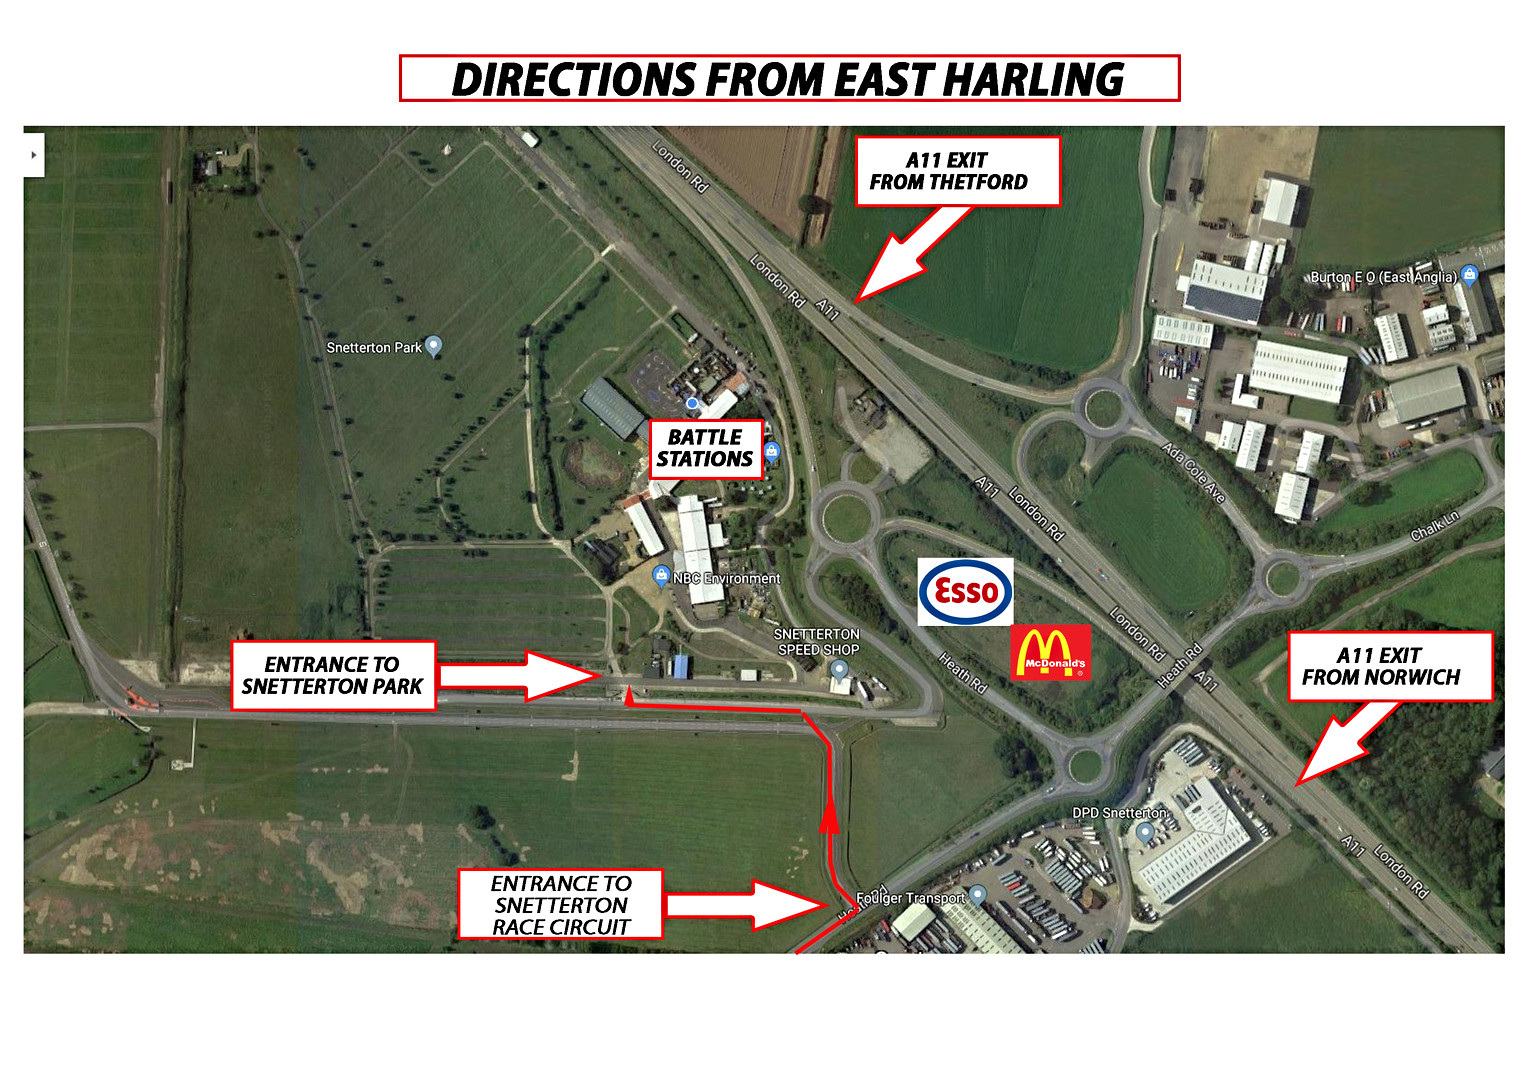 DIRECTIONS MAP FROM EAST HARLING 20.jpg